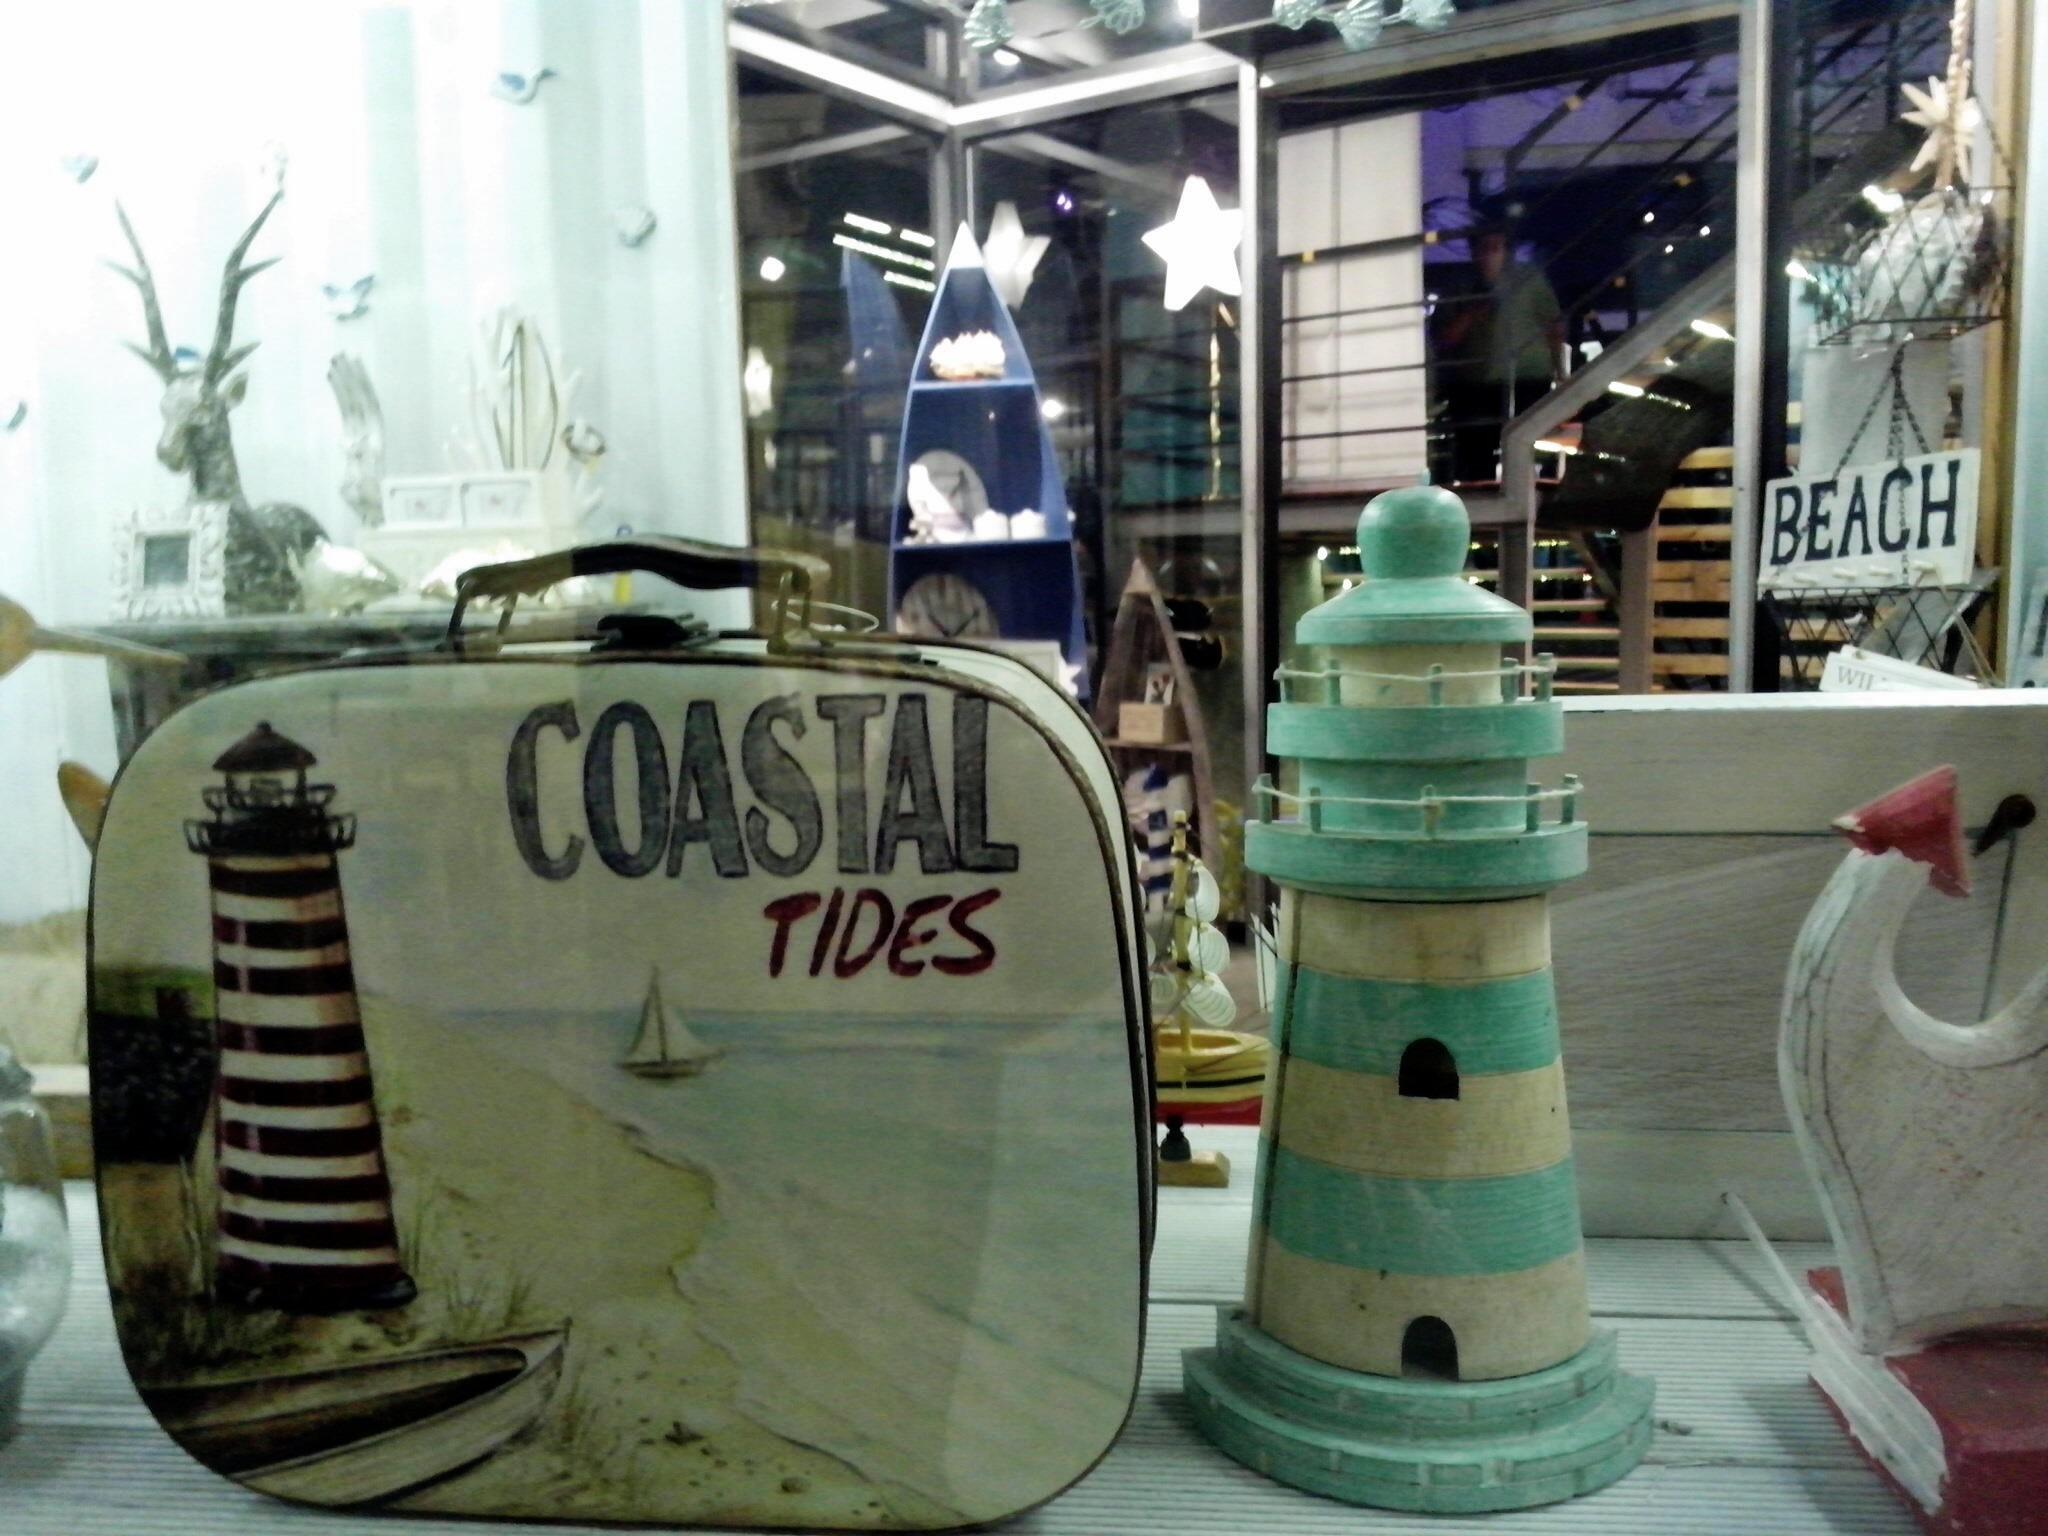 Beach, coastal living? are available at @cocobythesea1 #urbandistrict #foundry8 http://t.co/dYMnacWBlx